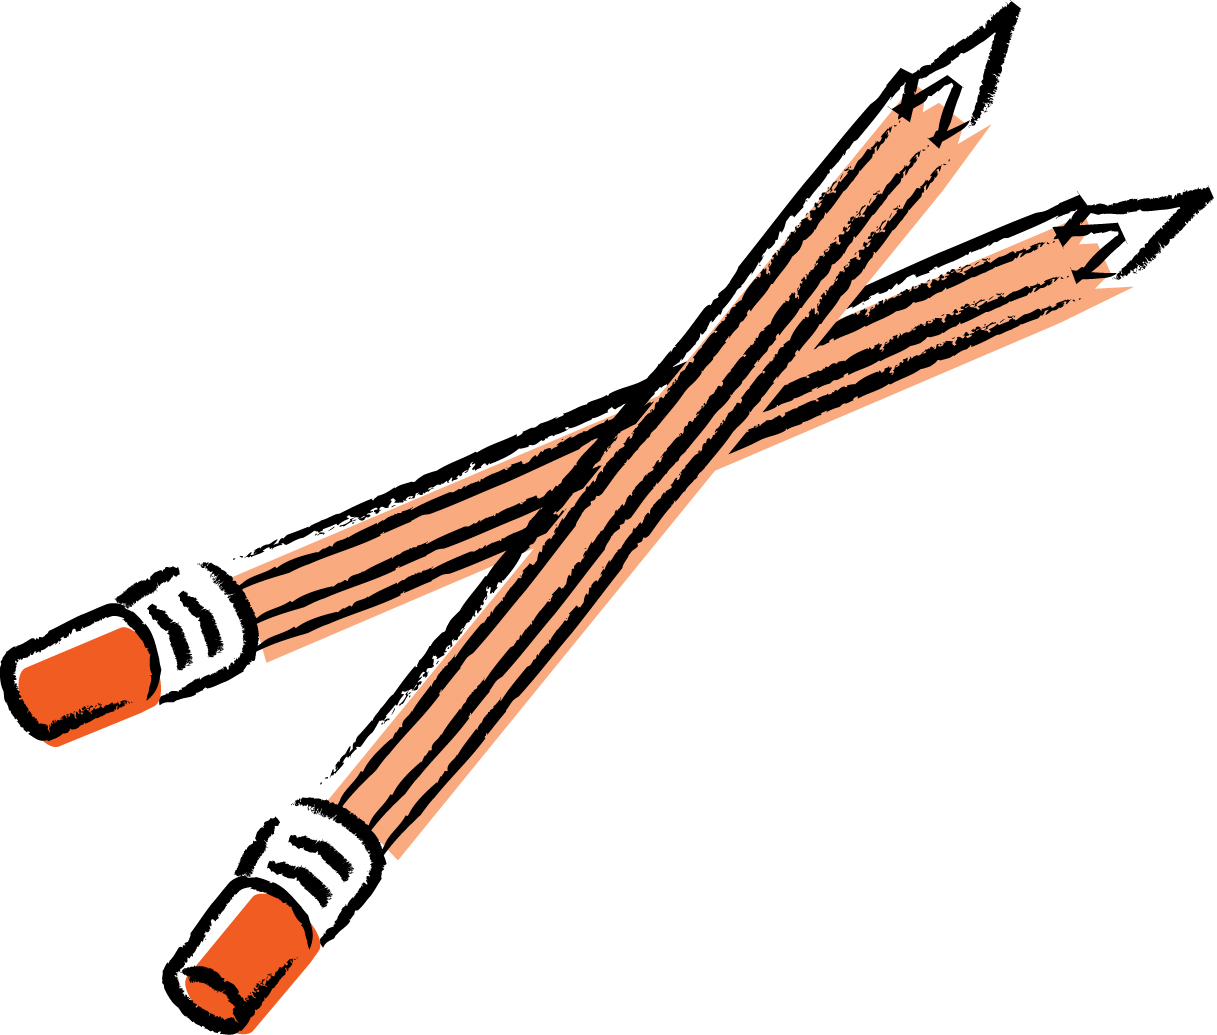 57 images of Broken Pencil Clip Art . You can use these free cliparts ...